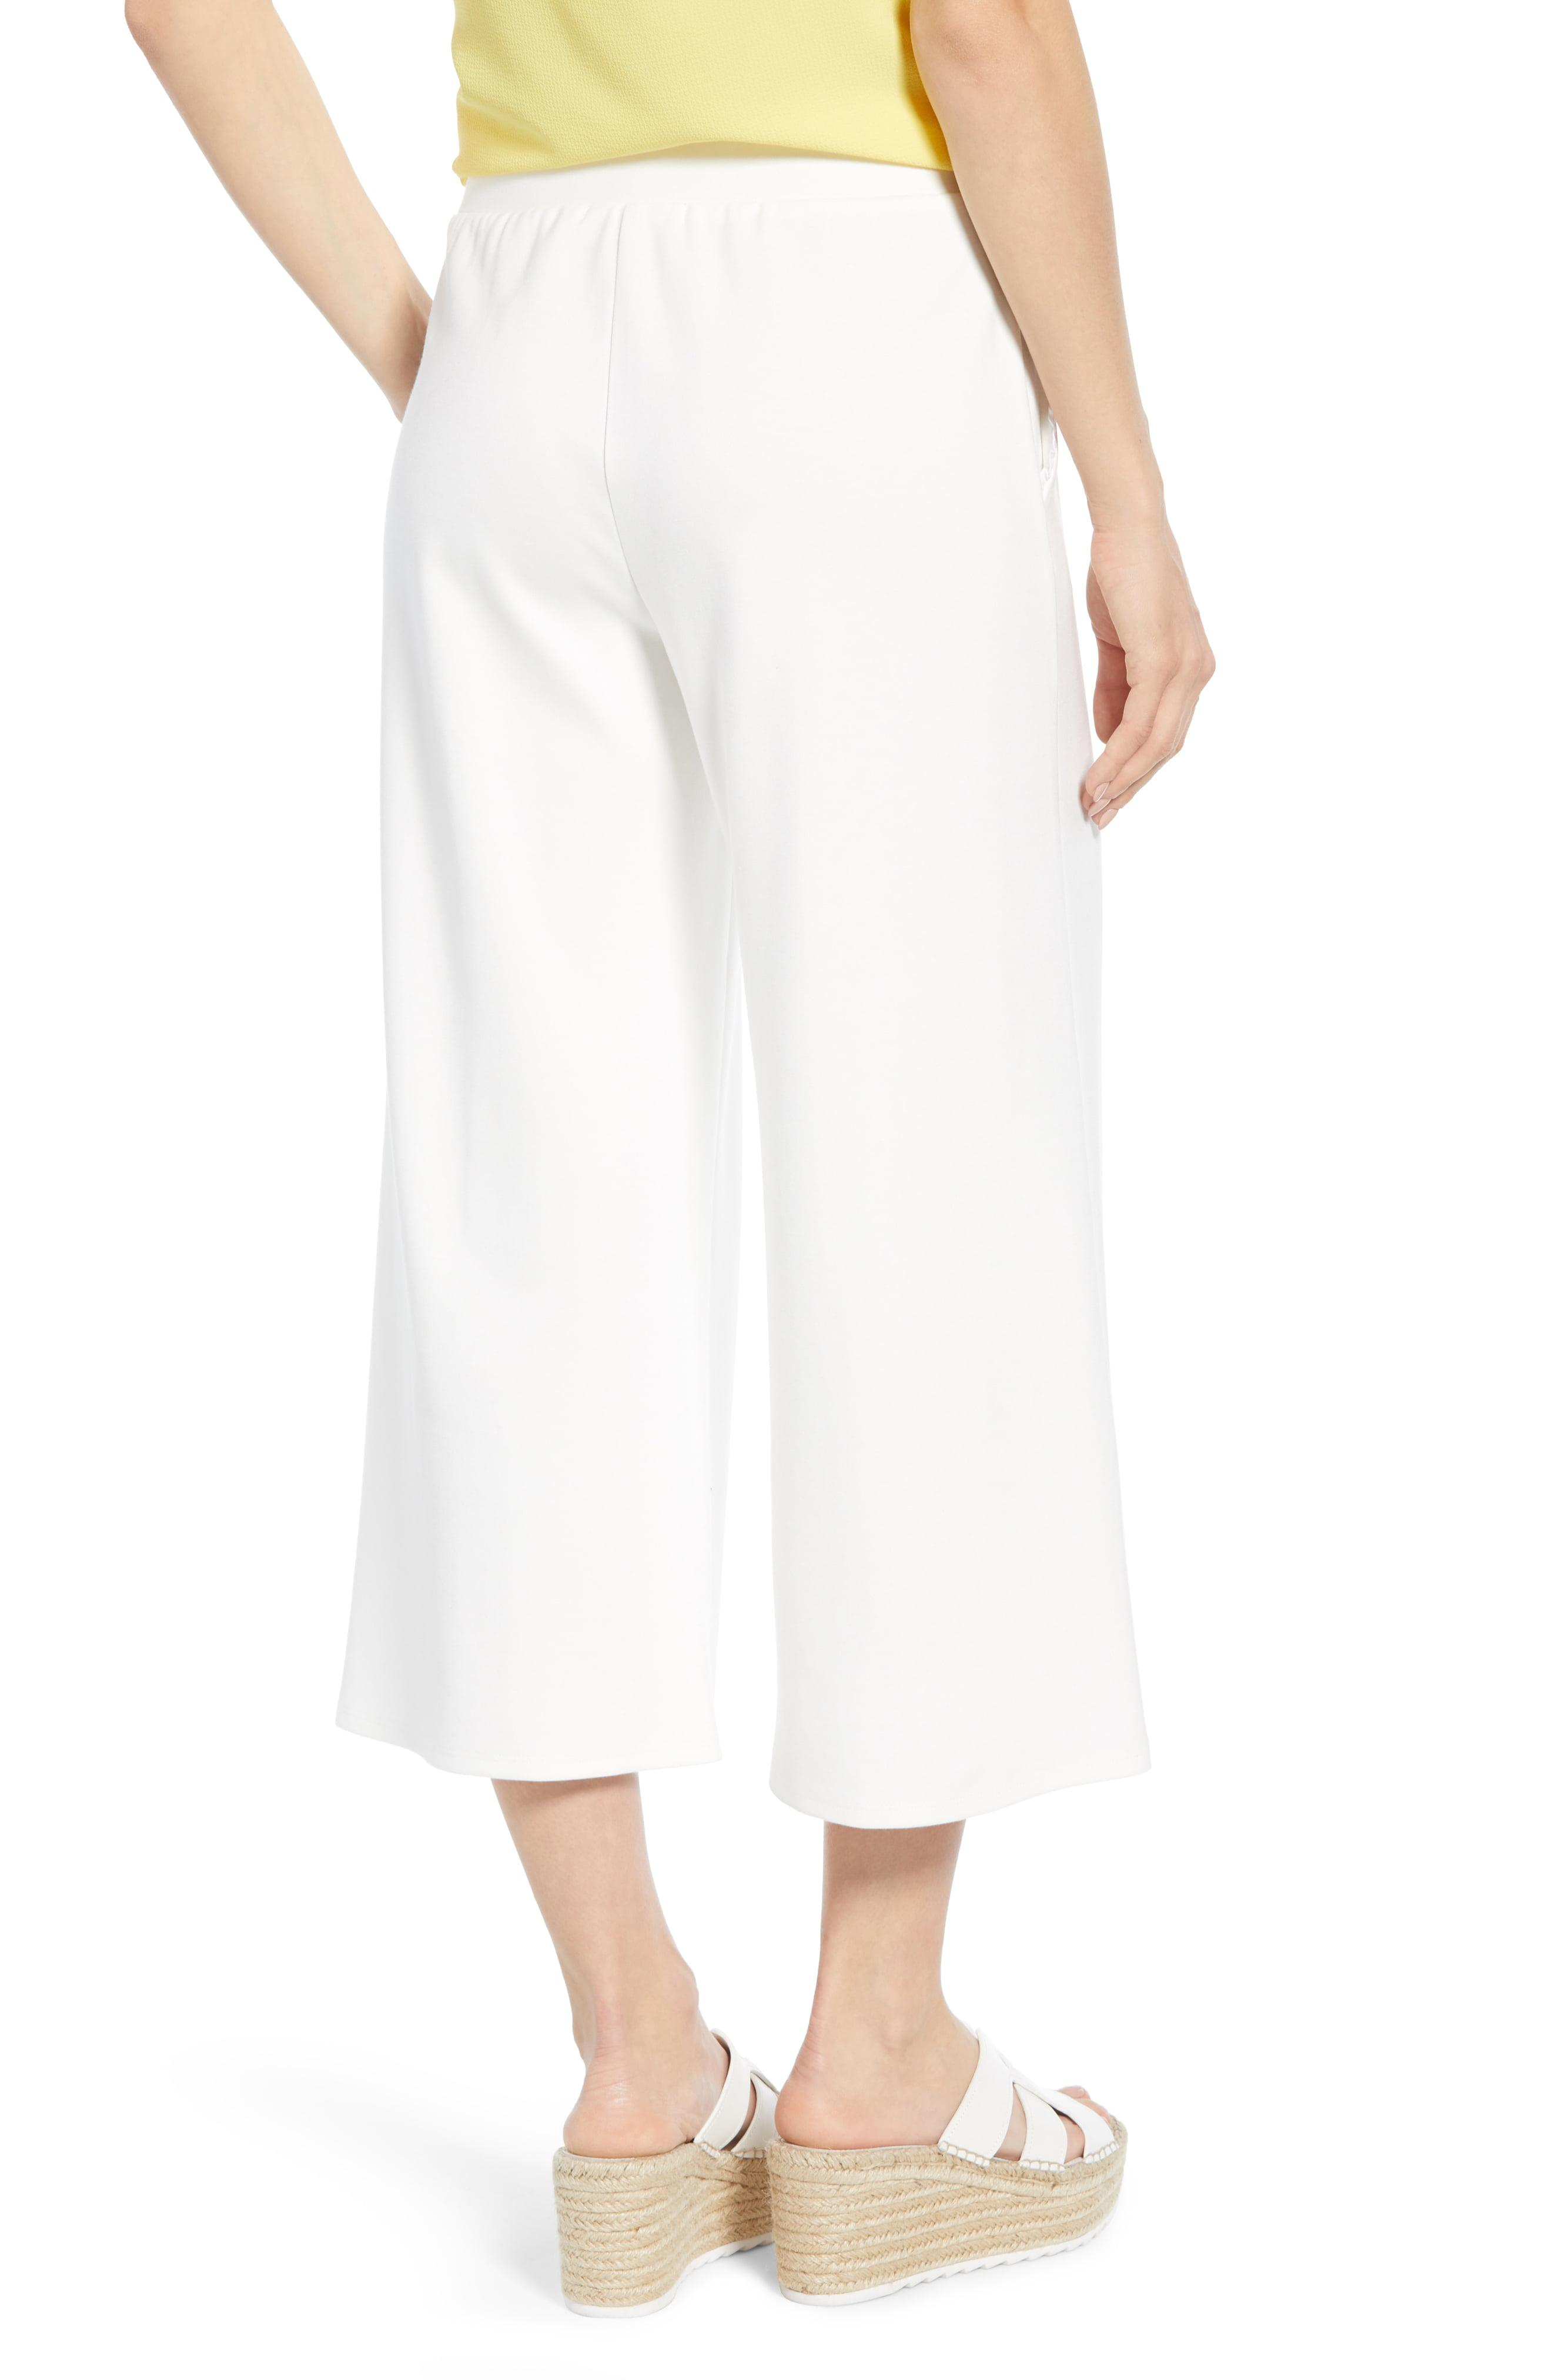 28952226efe1f8 Gibson - White X Living In Yellow Wide Leg Crop Pants - Lyst. View  fullscreen